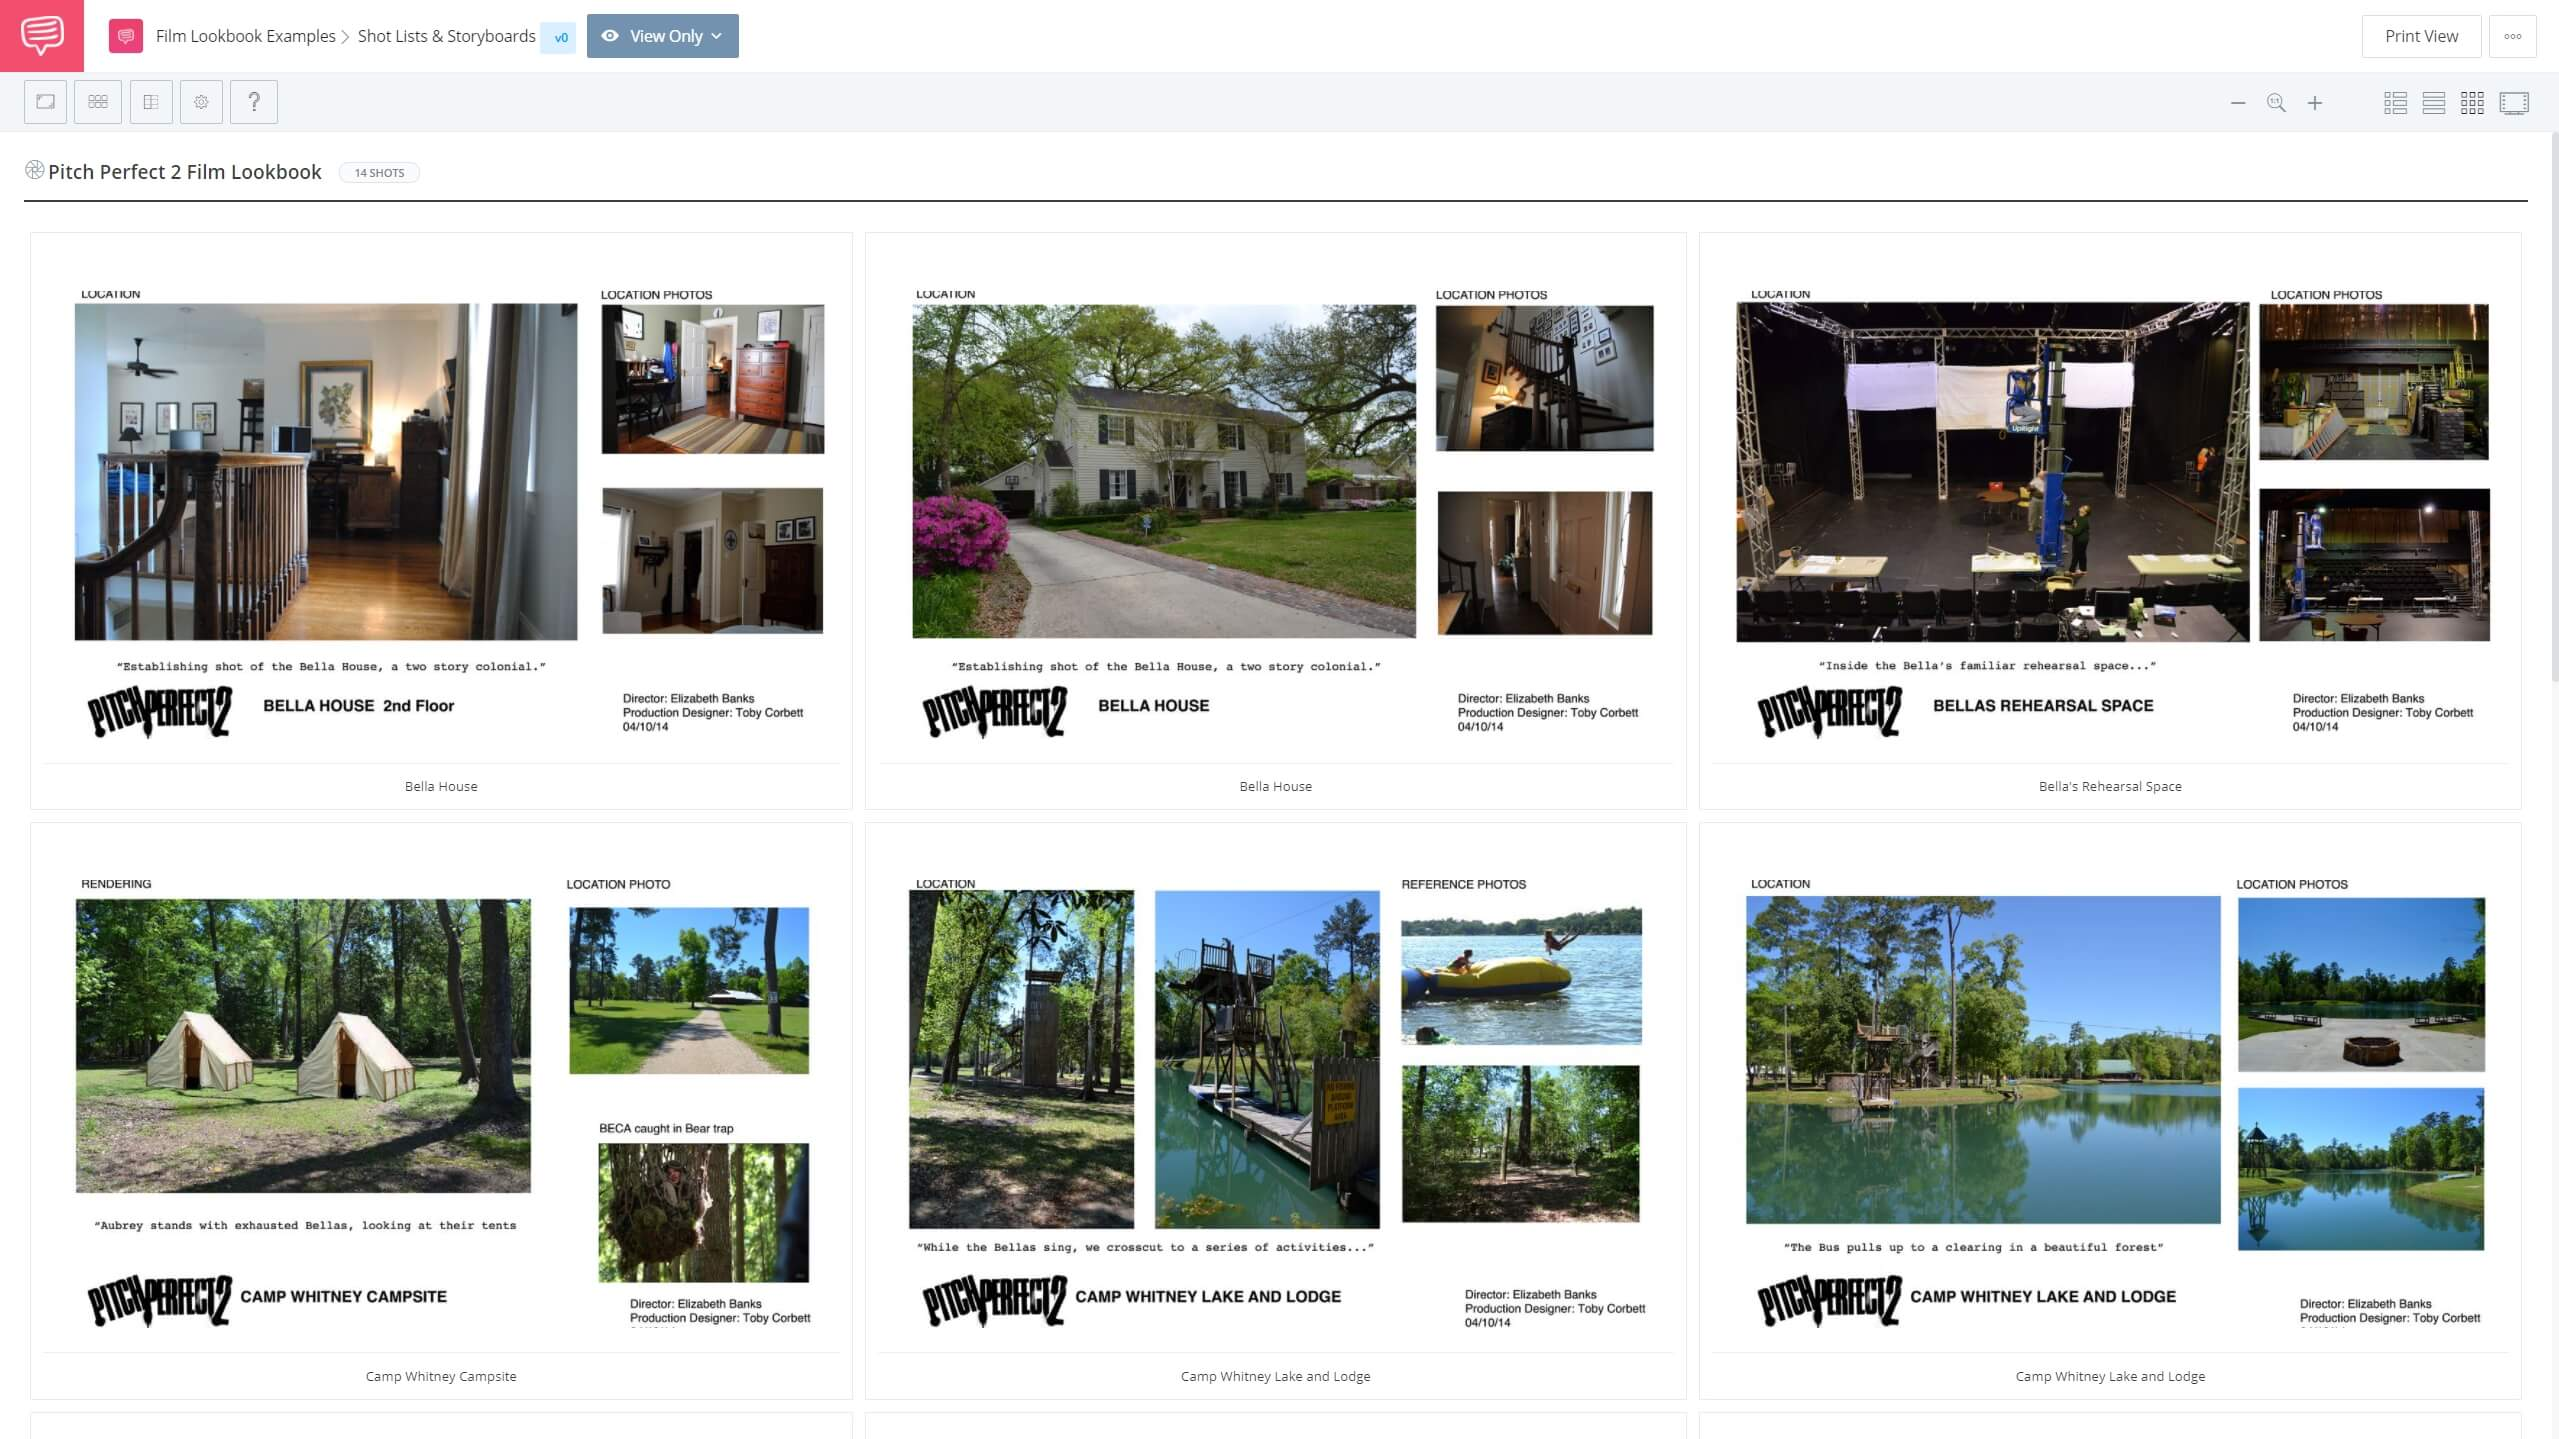 What is Film Lookbook Example - Pitch Perfect 2 Lookbook Example - StudioBinder Shot Listing Software